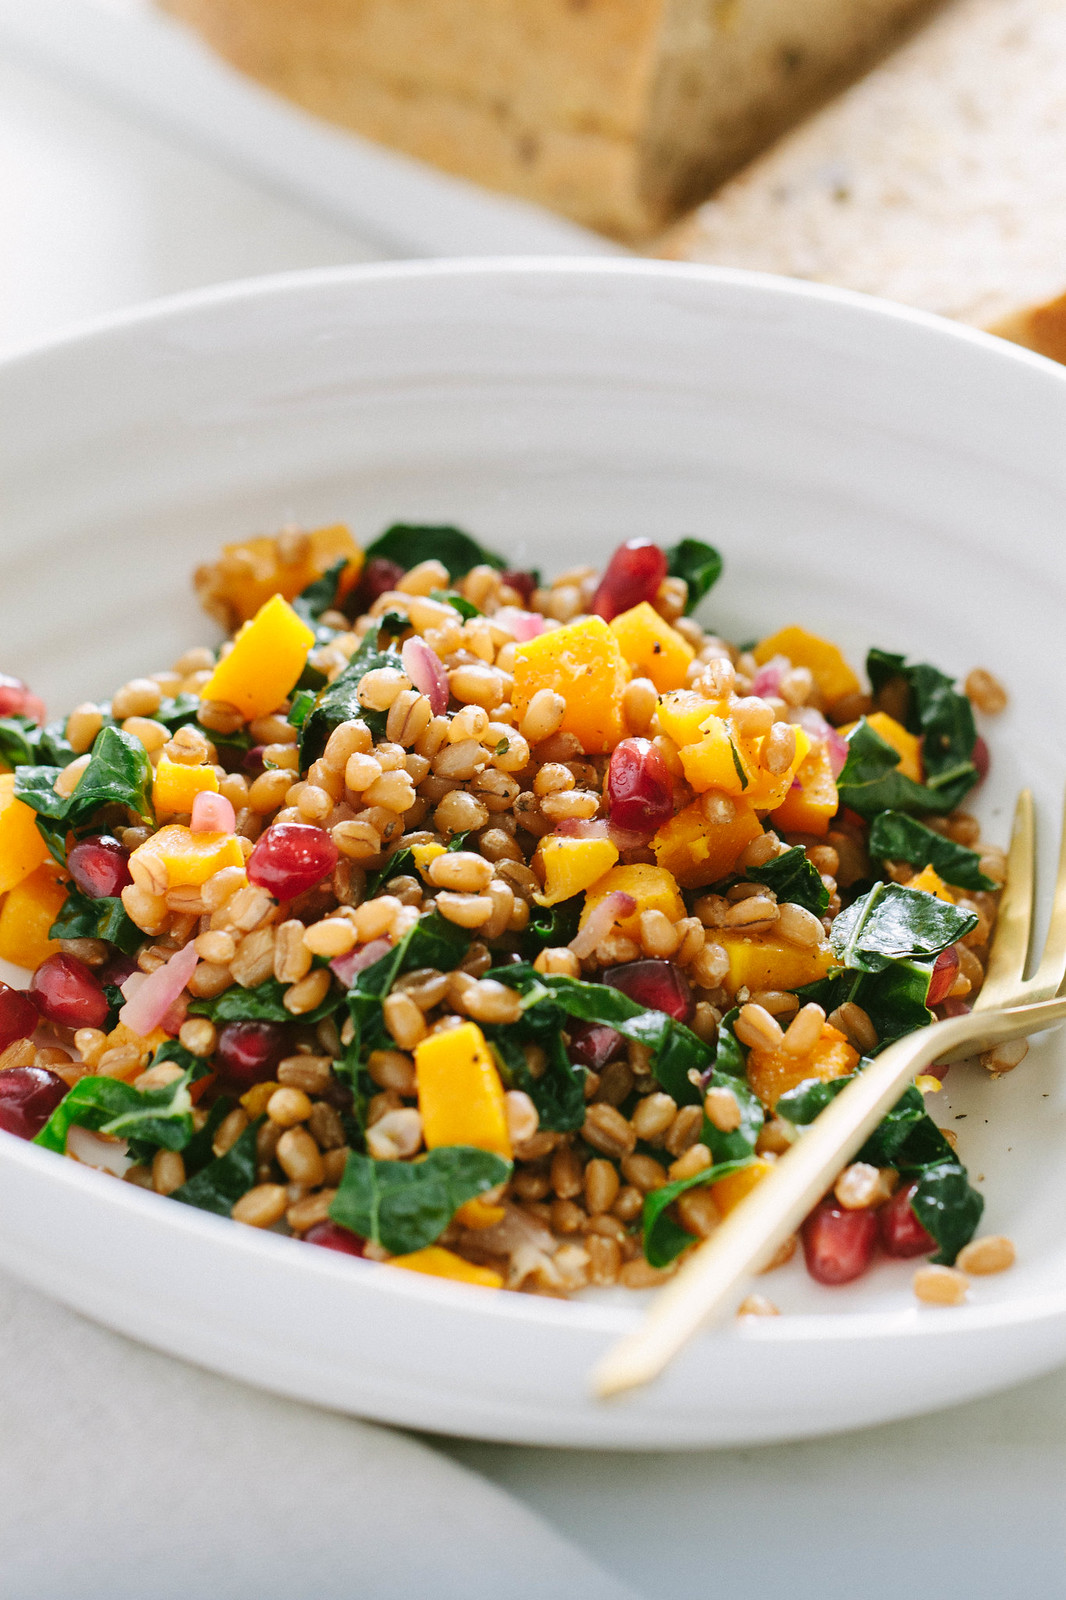 AUTUMN WHEAT BERRY + BUTTERNUT SQUASH SALAD